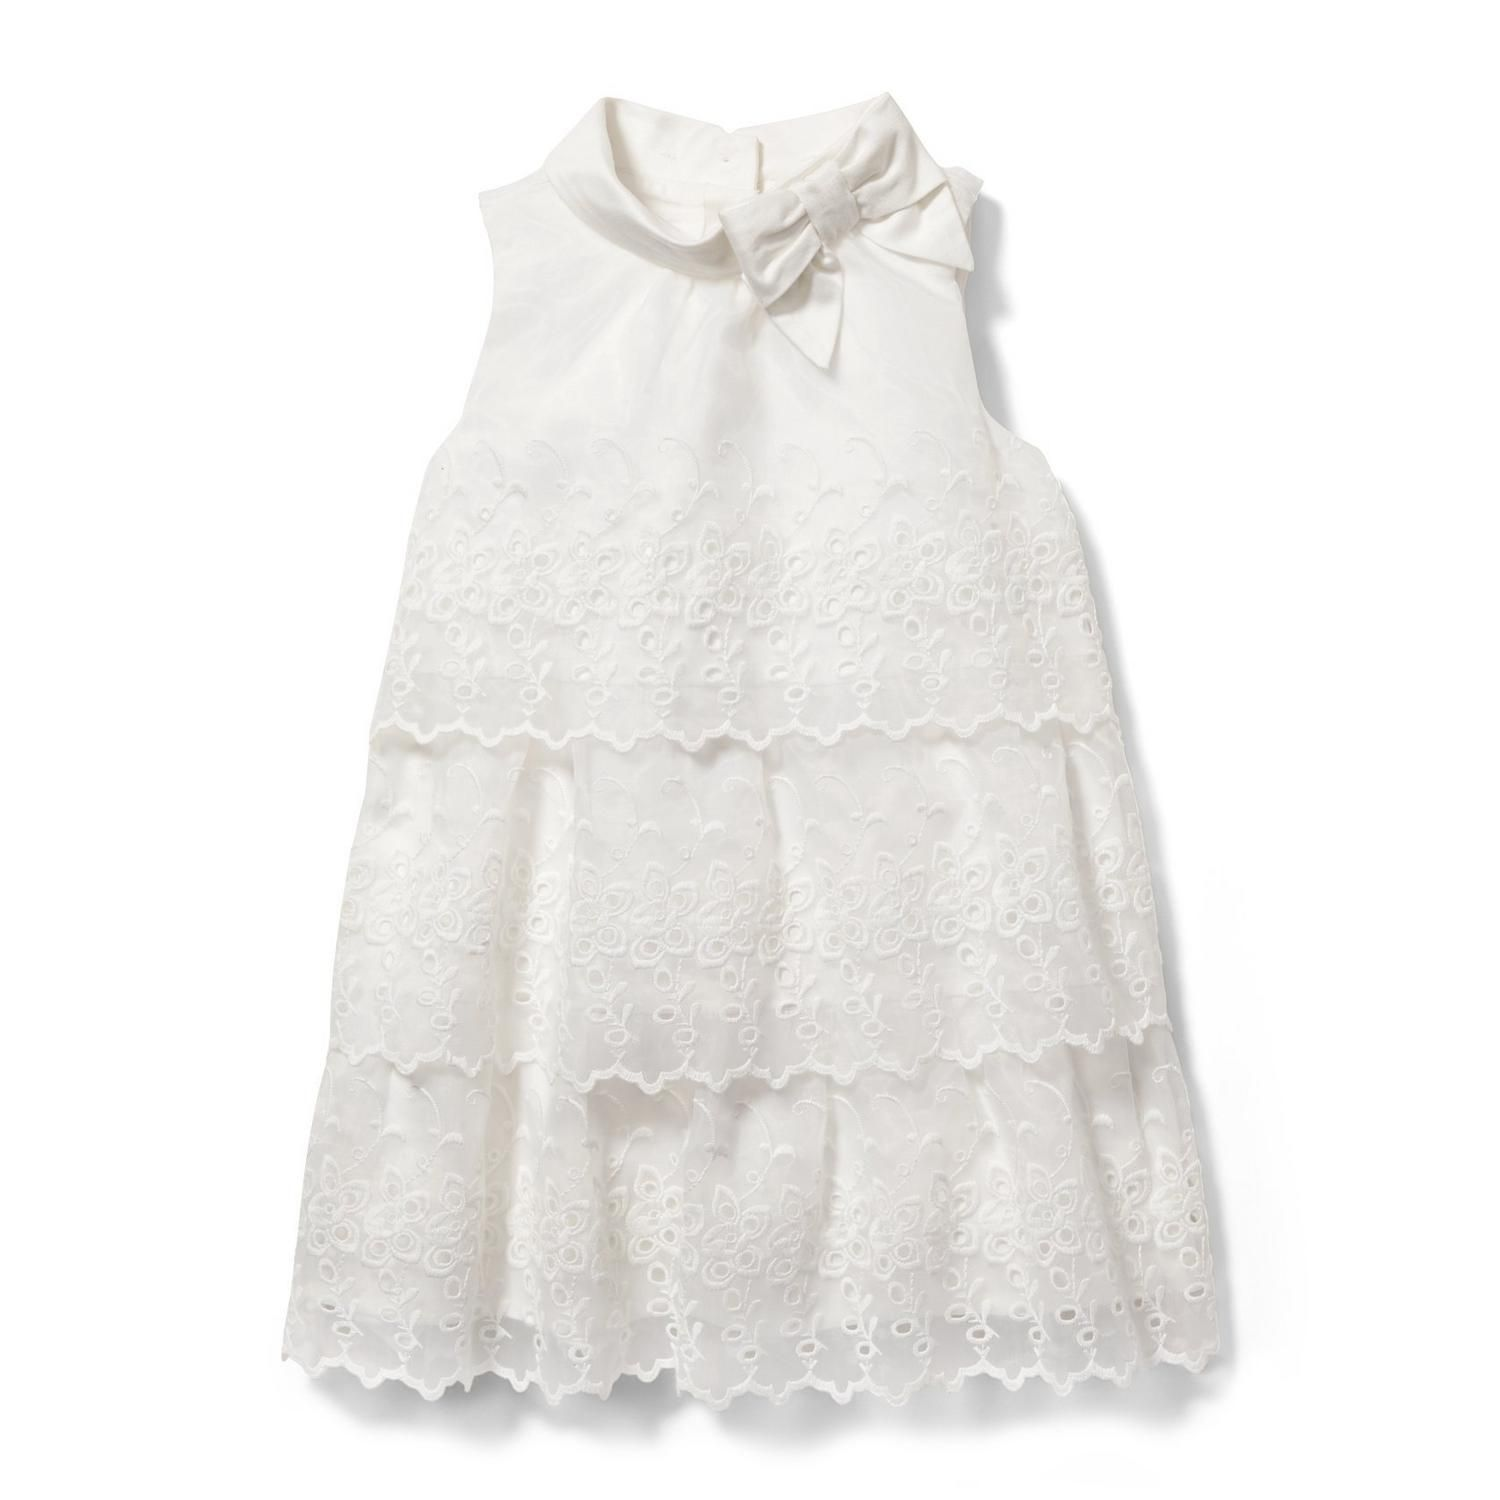 Girl White Eyelet Tiered Dress By Janie And Jack Tiered Dress Girls White Dress Girls Designer Clothes [ 1500 x 1500 Pixel ]